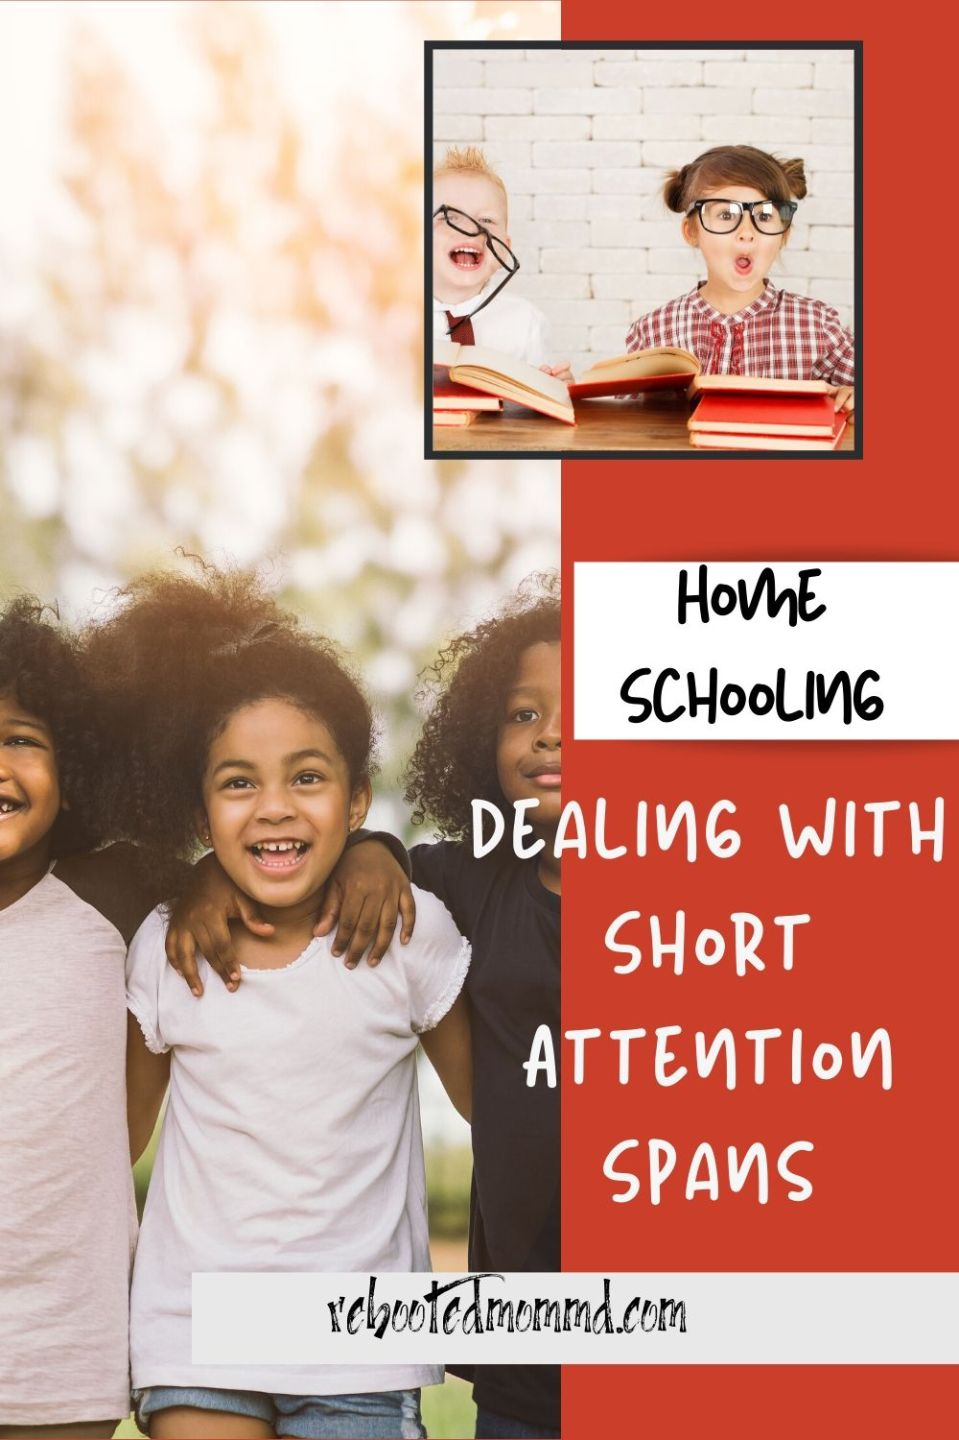 Homeschooling: How to Cope with Waning Attention Spans